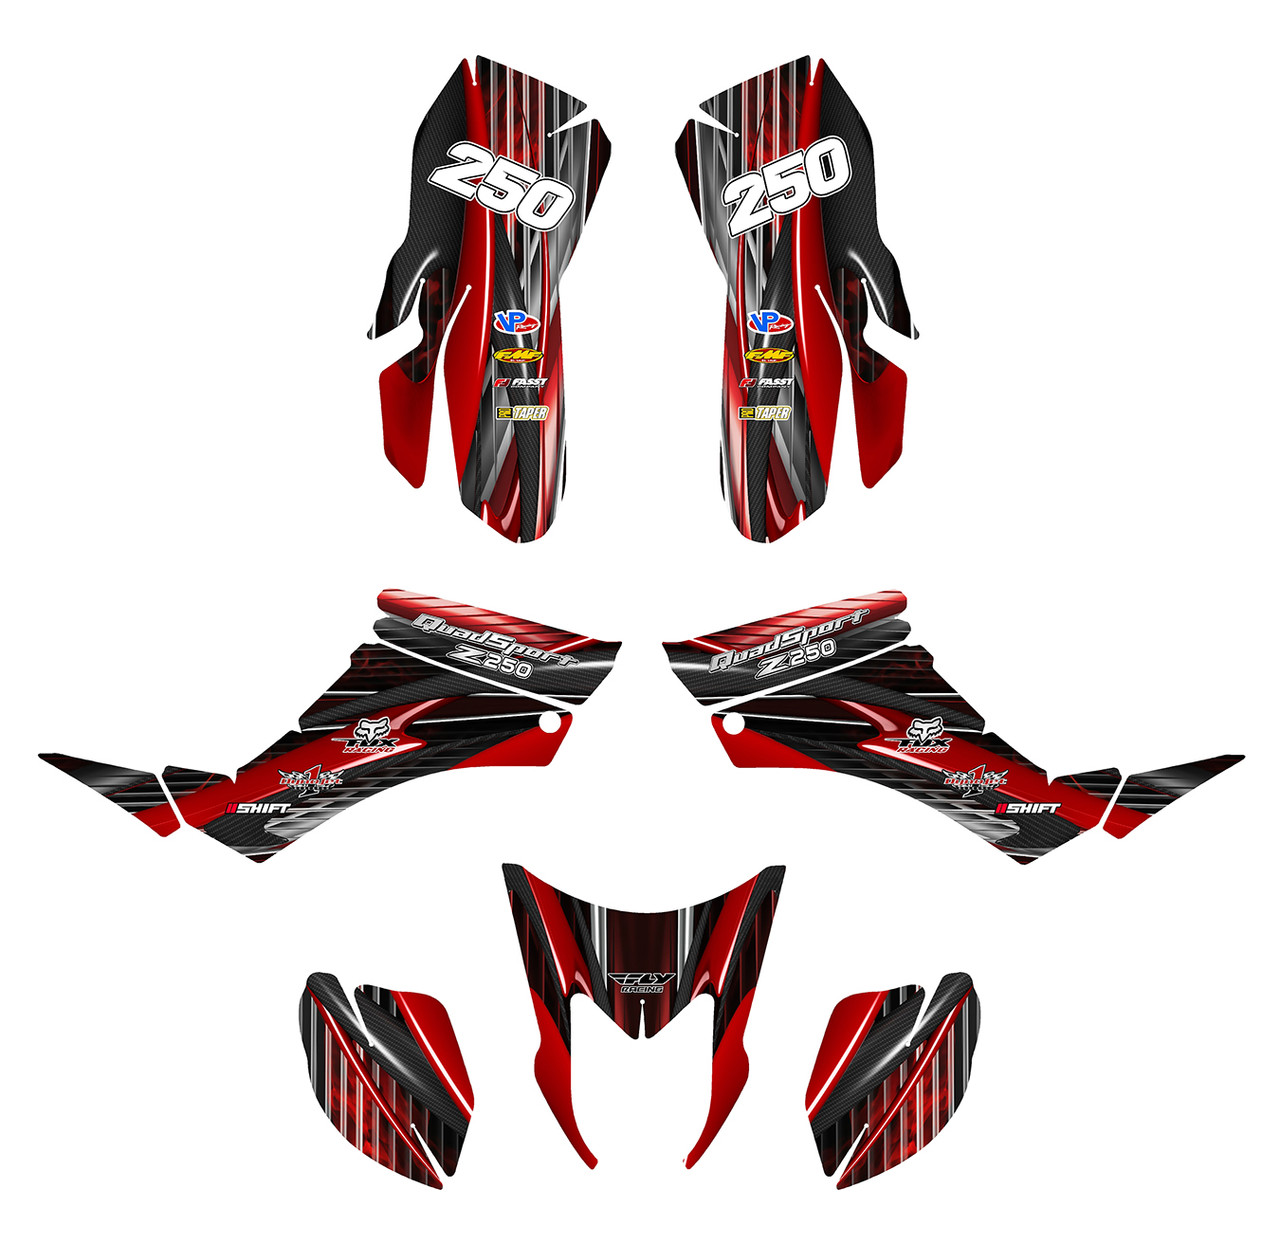 LTZ250 graphics decal kit by allmotorgraphics.com